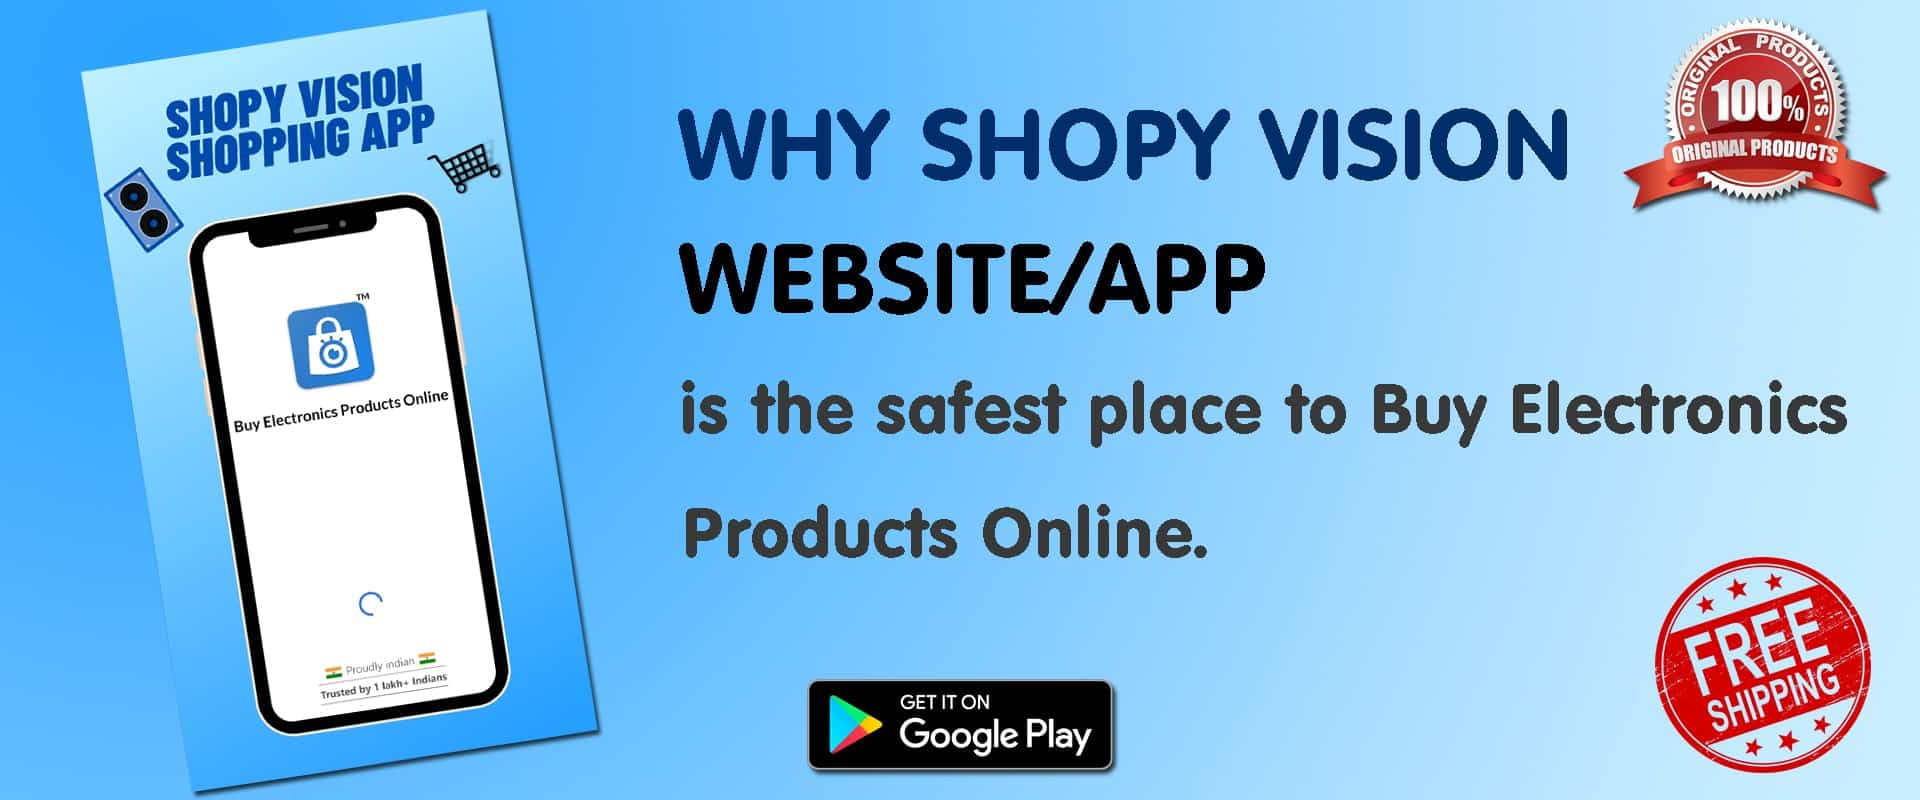 Why Shopy Vision